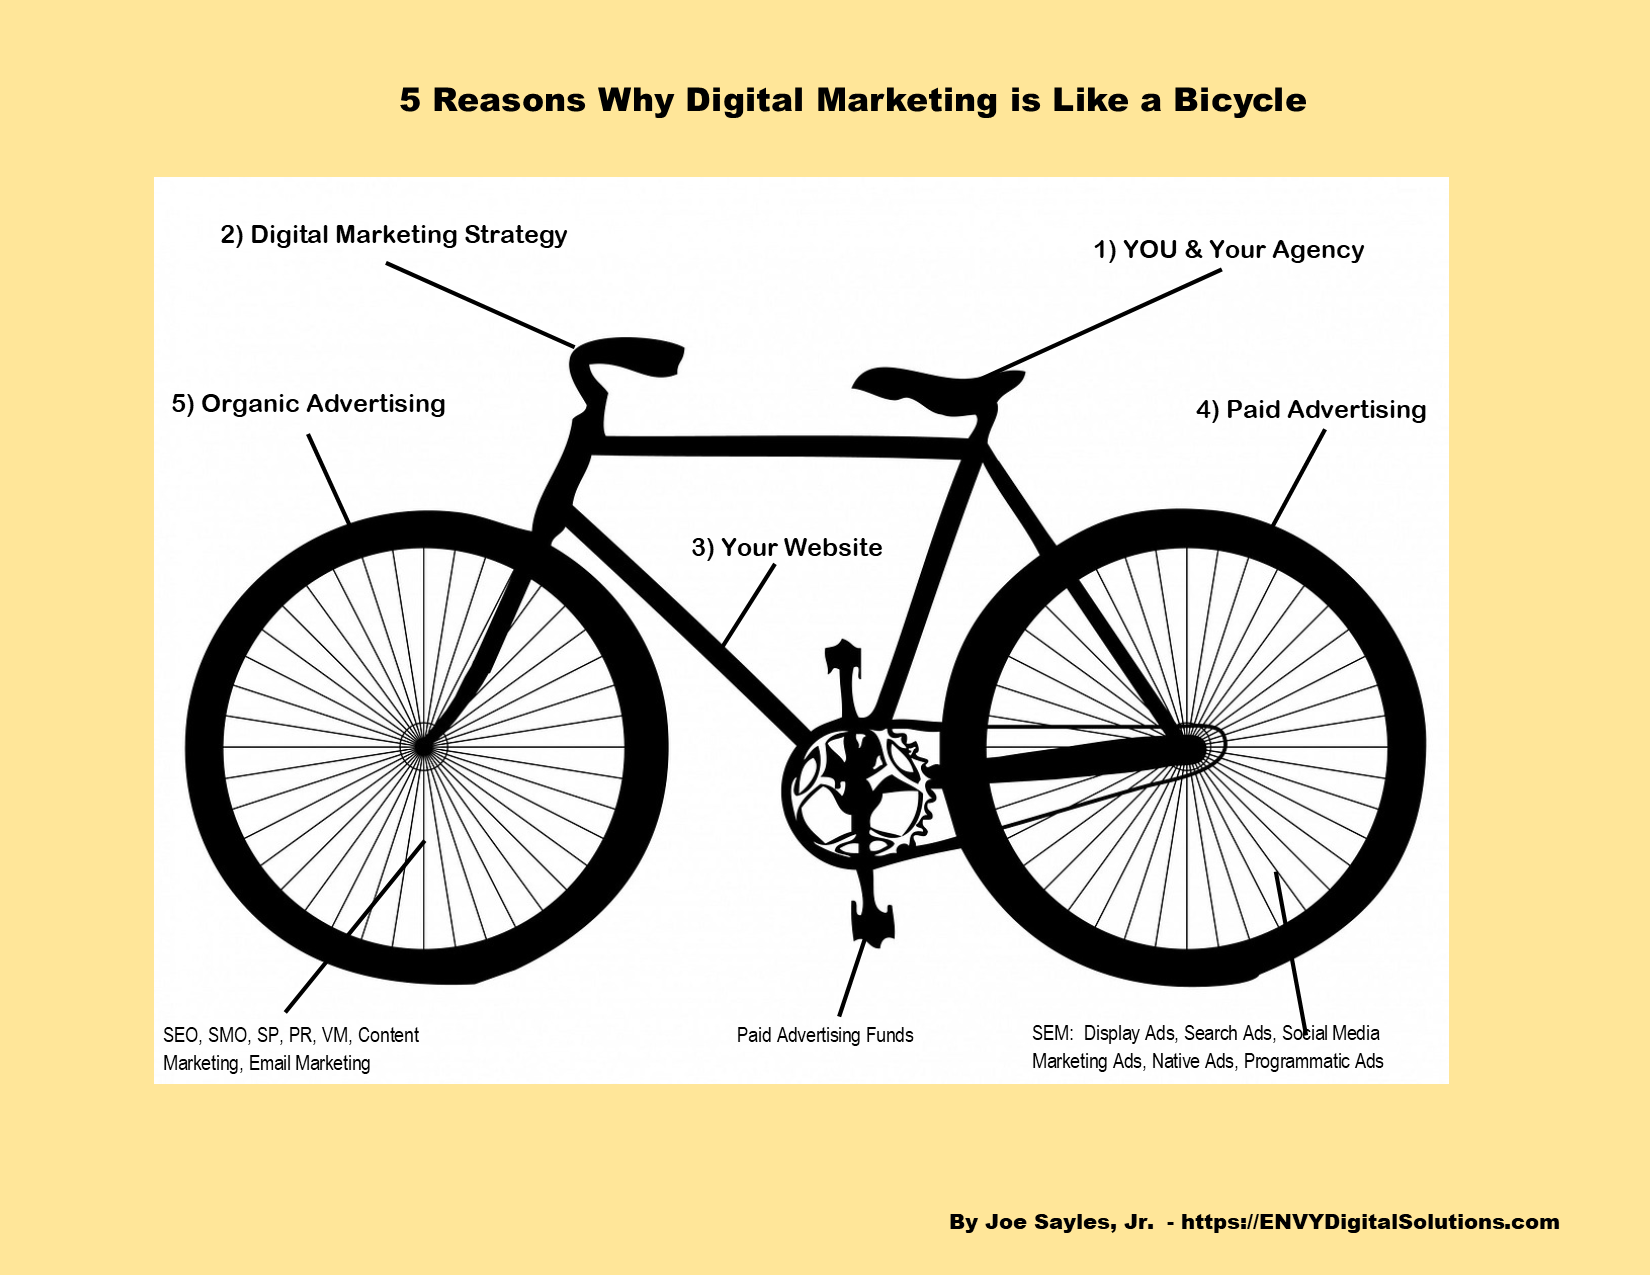 PNG Image of a Bicycle with Digital Marketing terms describing the parts of the bicycle.